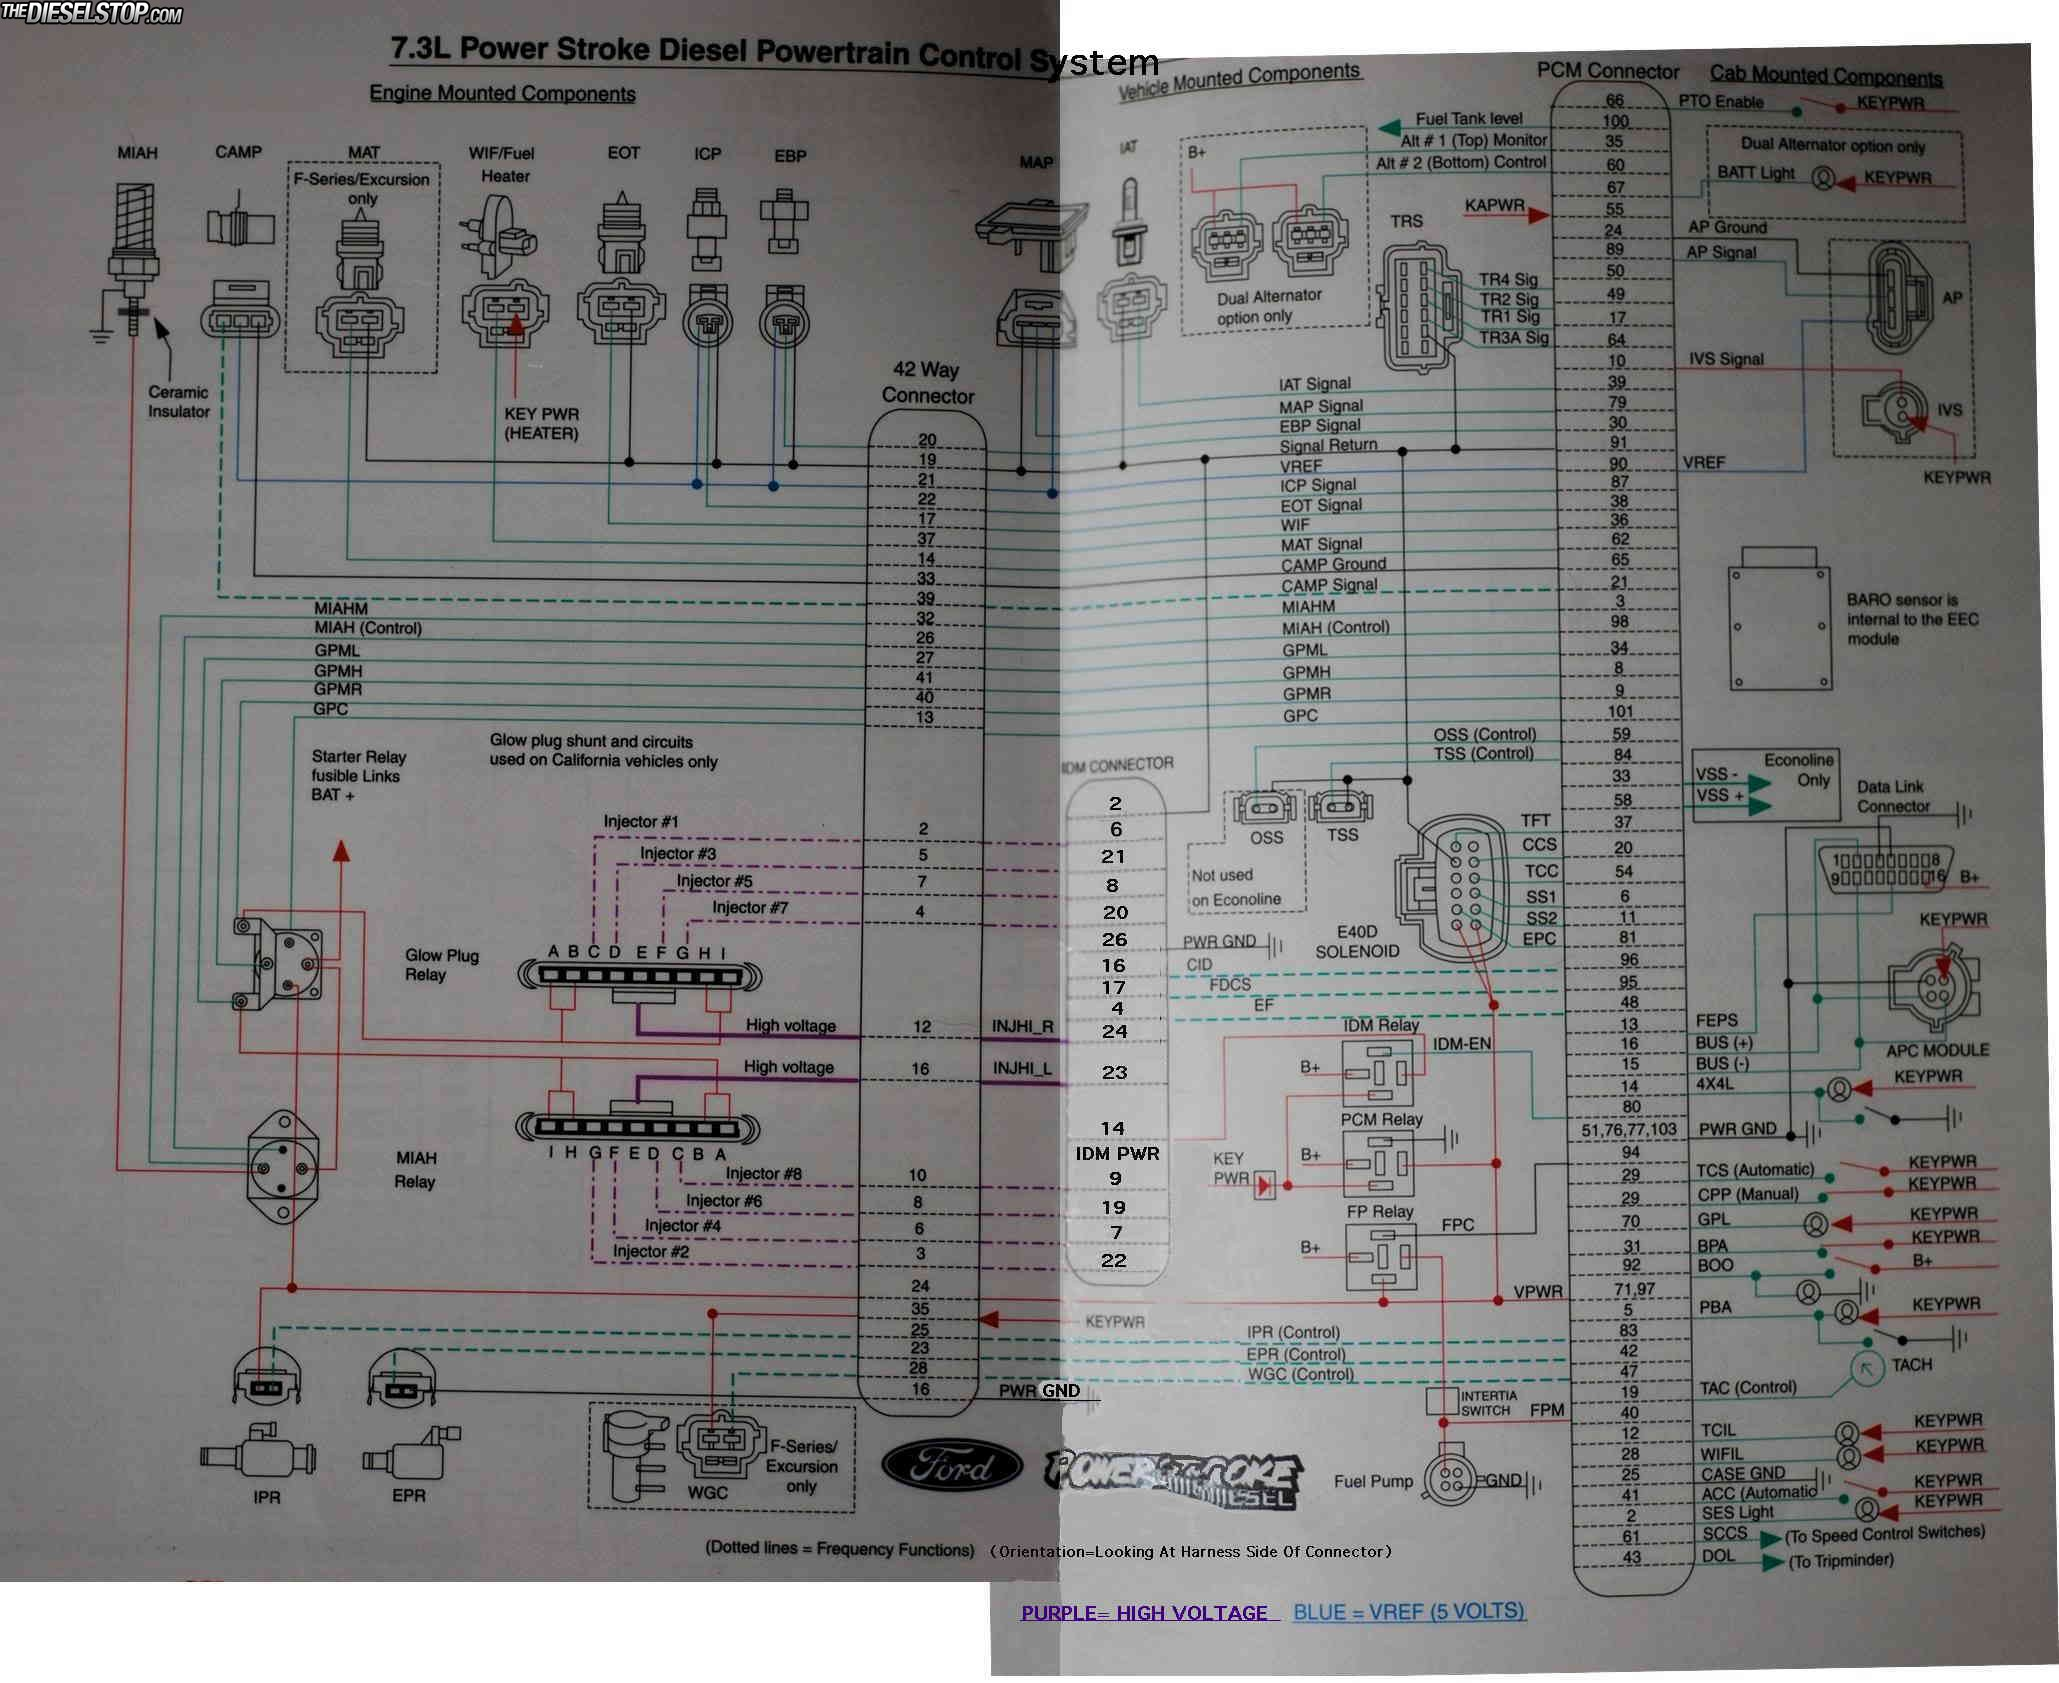 02 F250 7 3l Wiring Diagram | save-list Wiring Diagram Models -  save-list.hoteldelmarlidodicamaiore.it | 2002 F250 Diesel Wiring Diagram |  | wiring diagram library